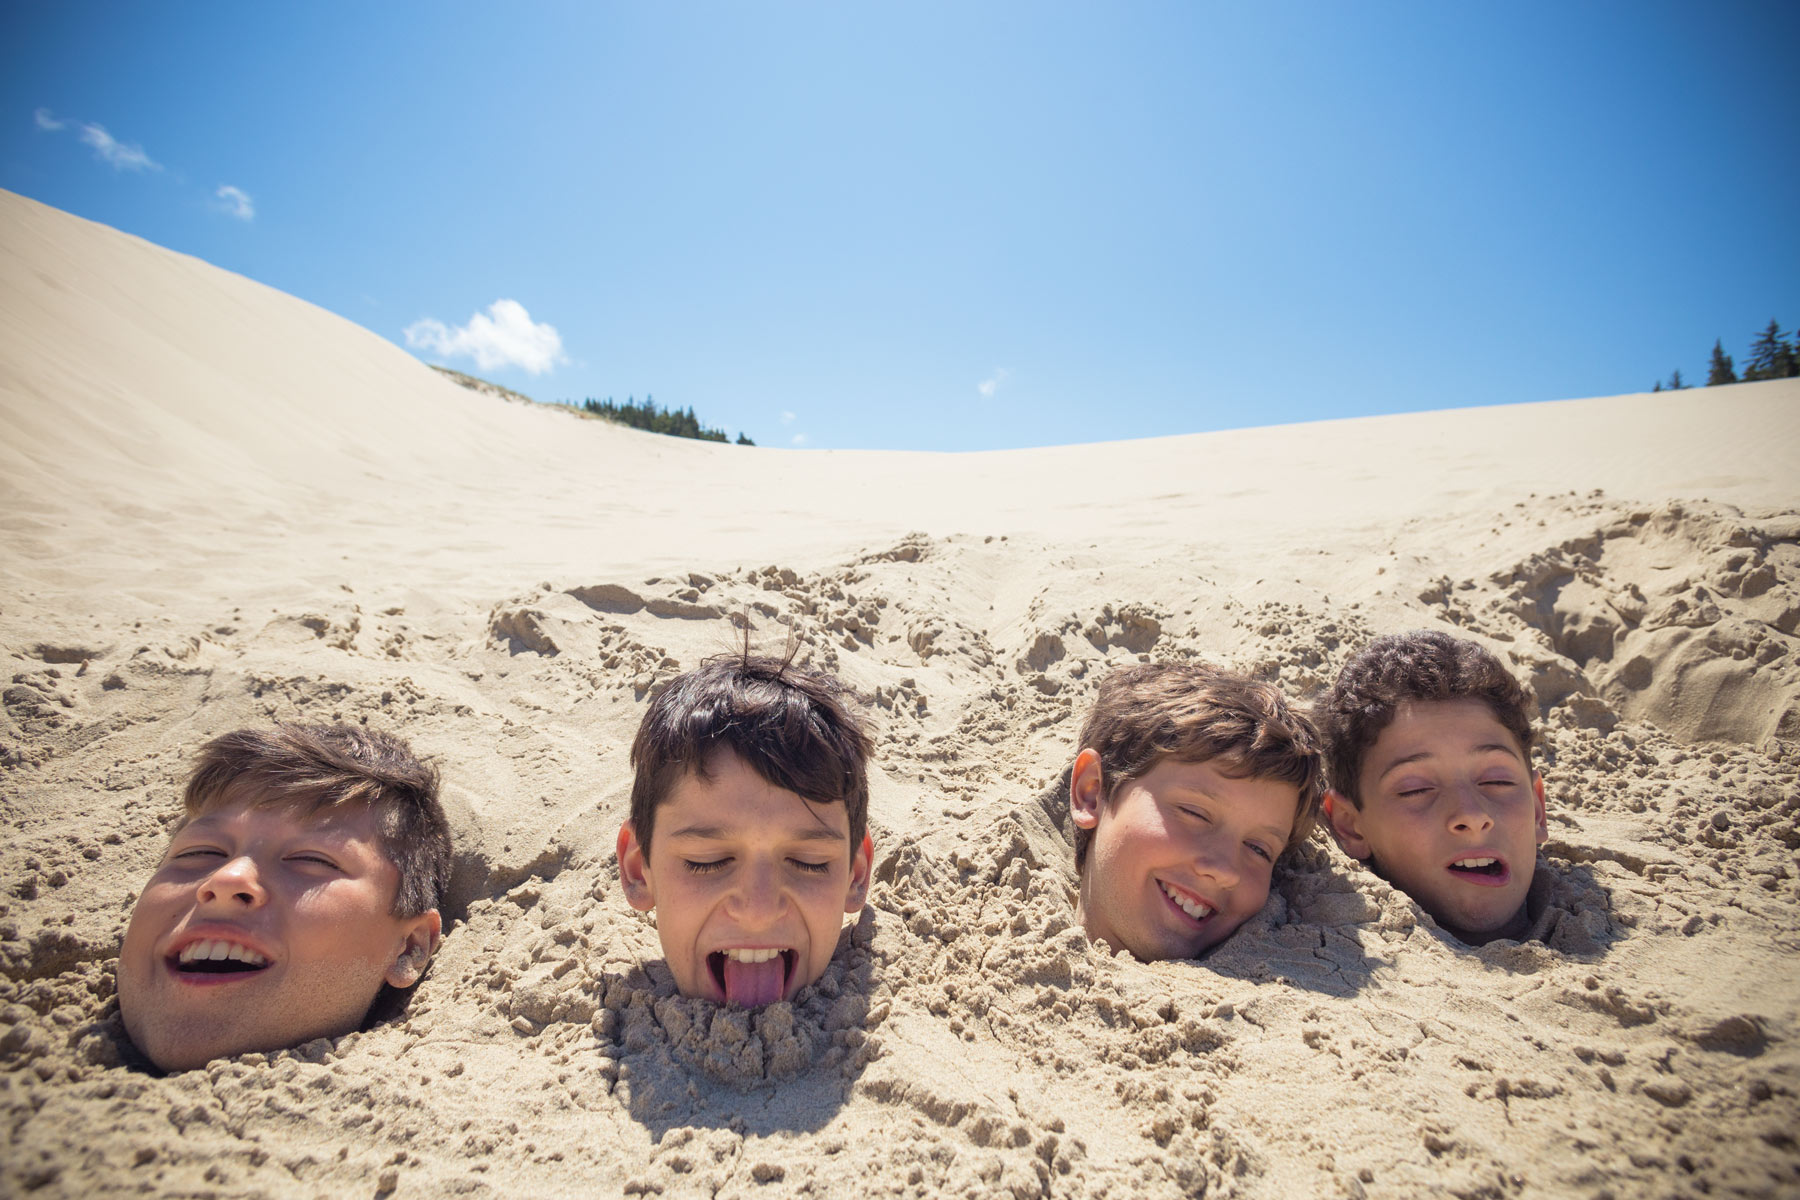 Schmitt_Boys-in-sand